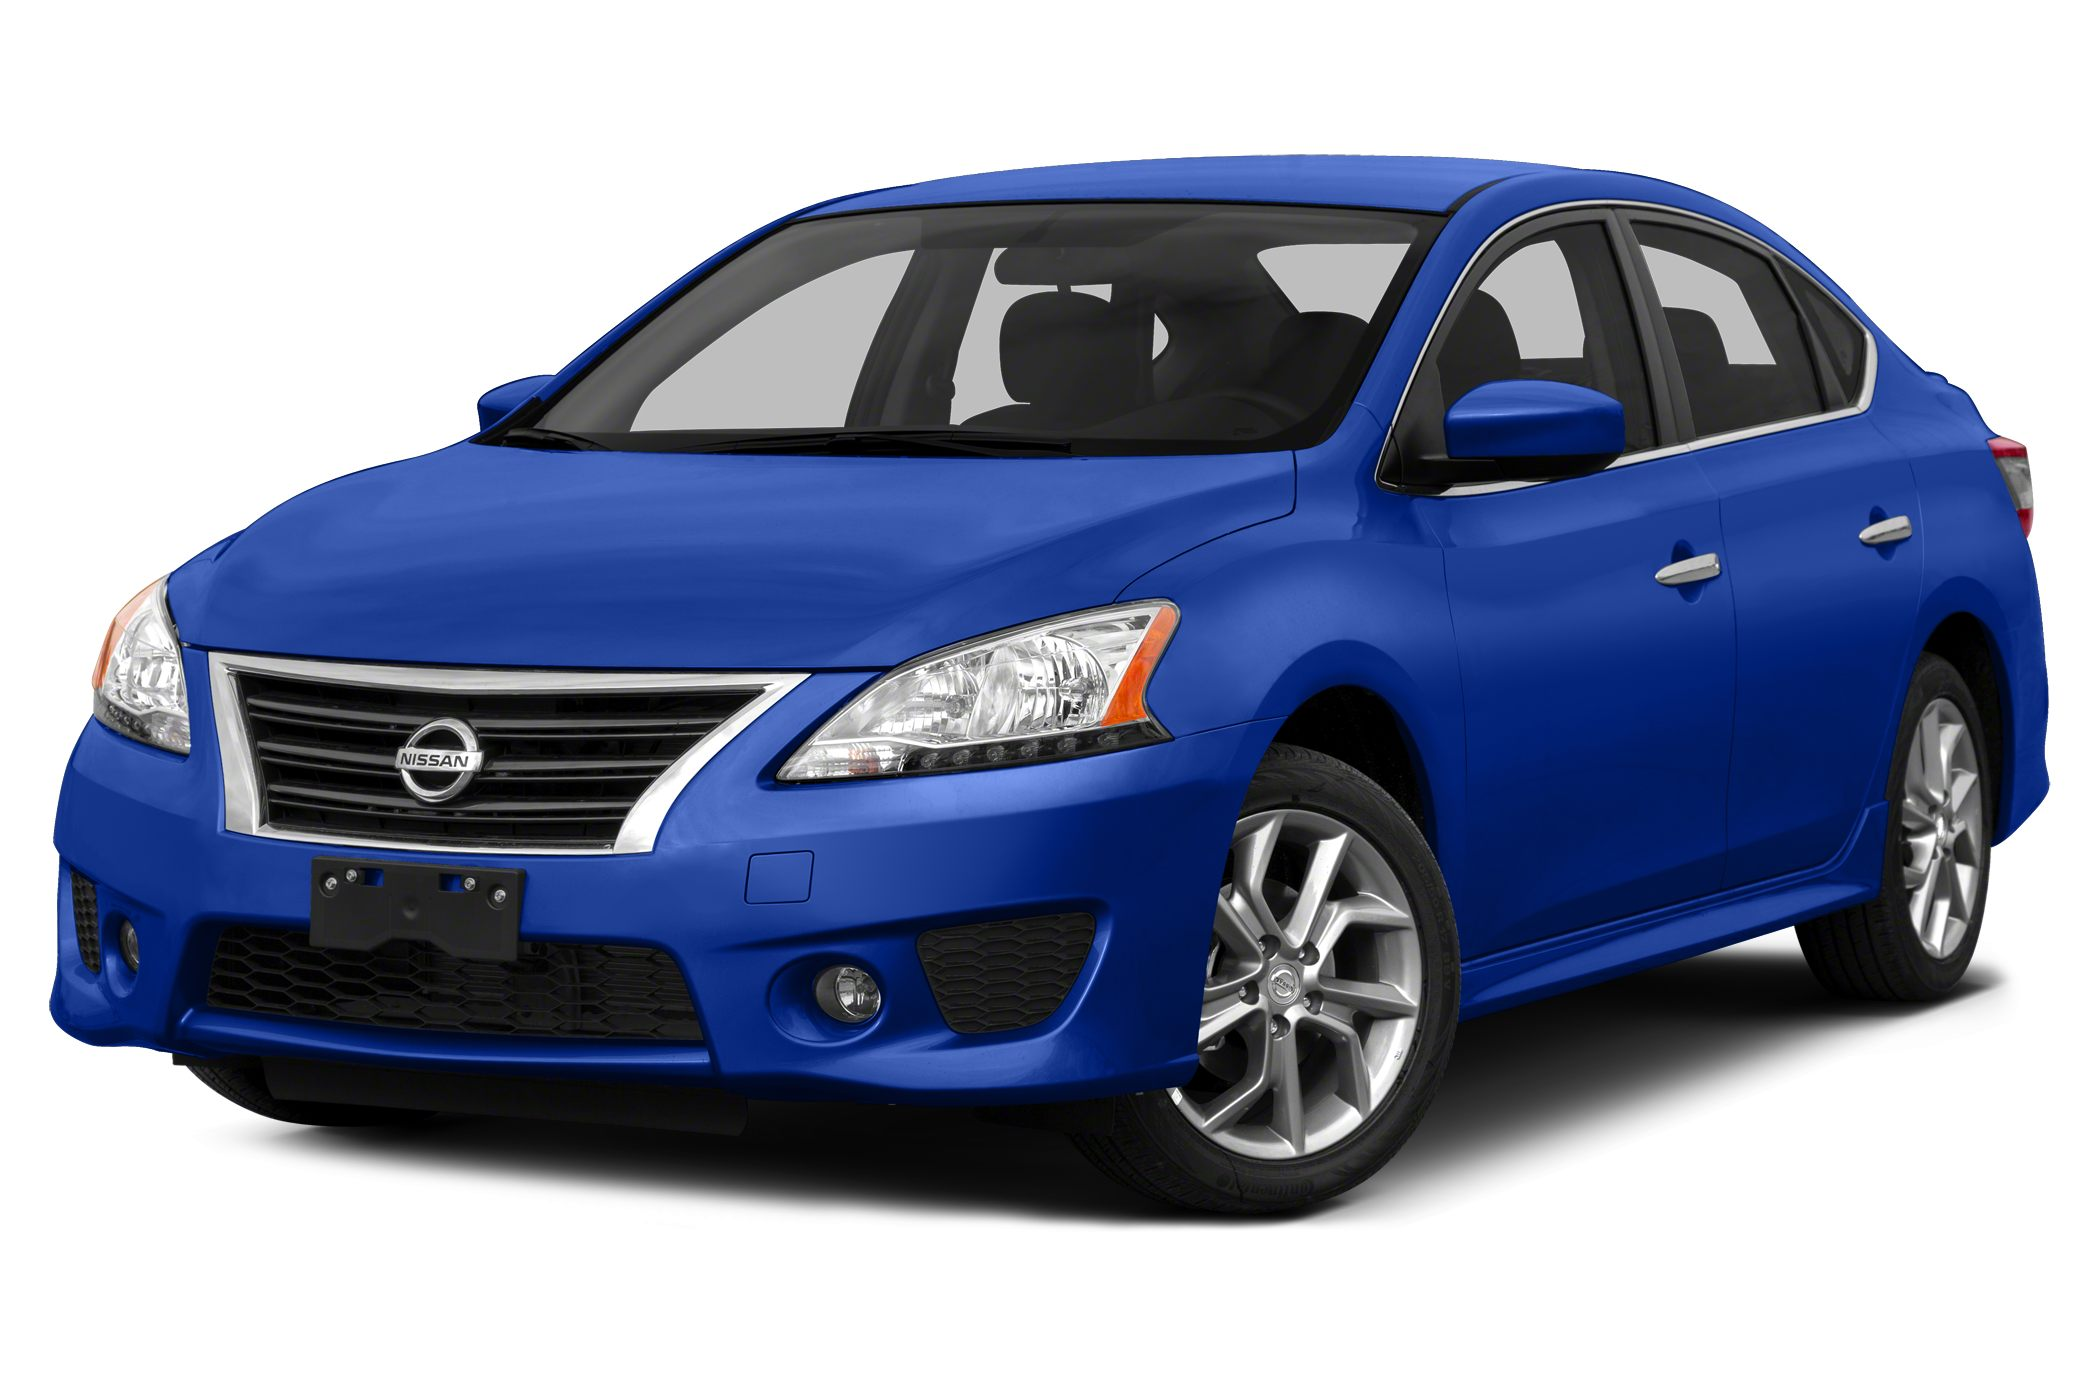 2014 Nissan Sentra SR Sedan for sale in Hawthorne for $19,785 with 10 miles.